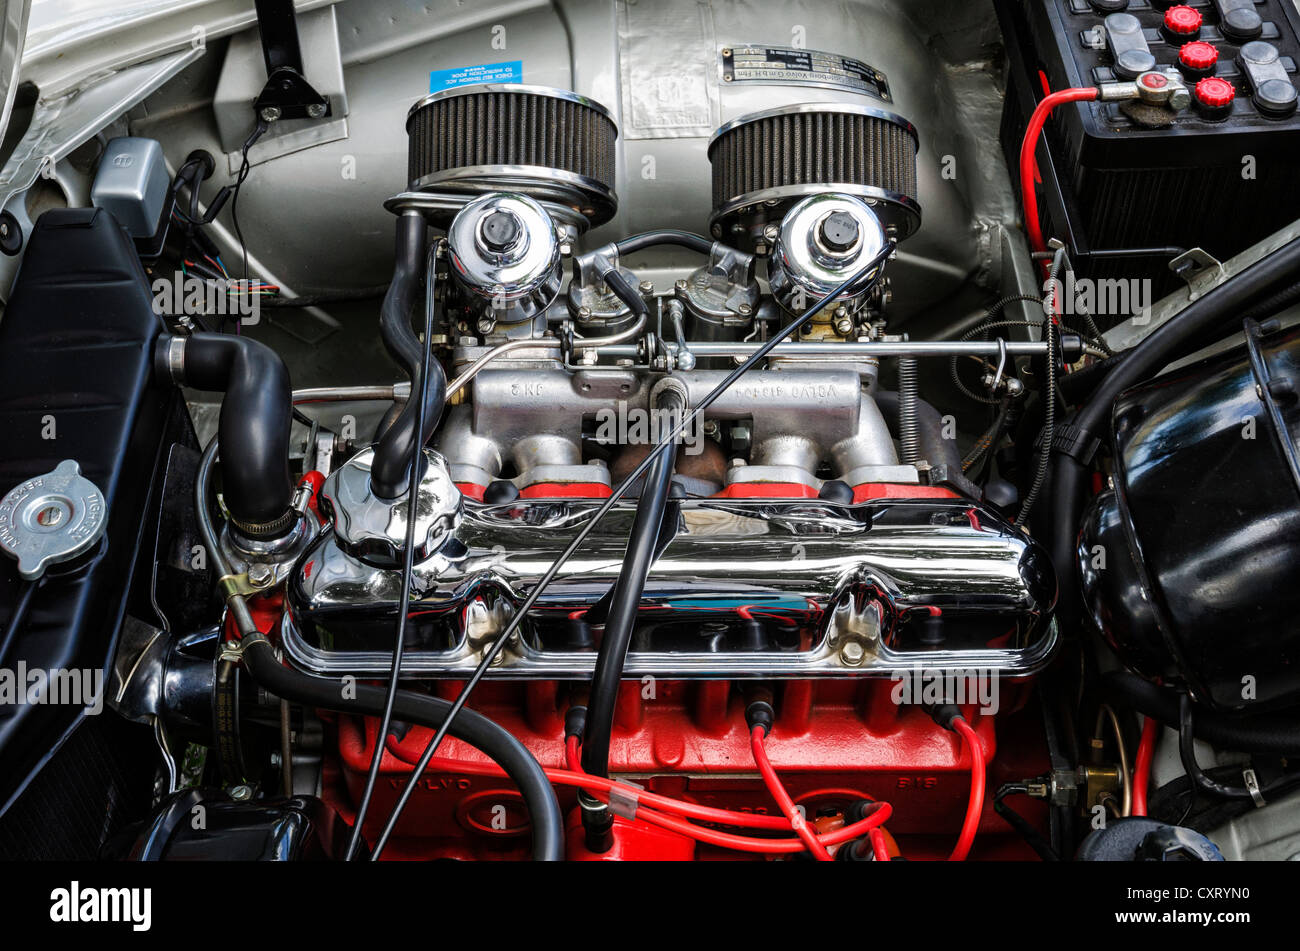 View of the engine compartment of a Volvo P1800S Pressed Steel, built in 1964, festival of classic cars 'Retro - Stock Image